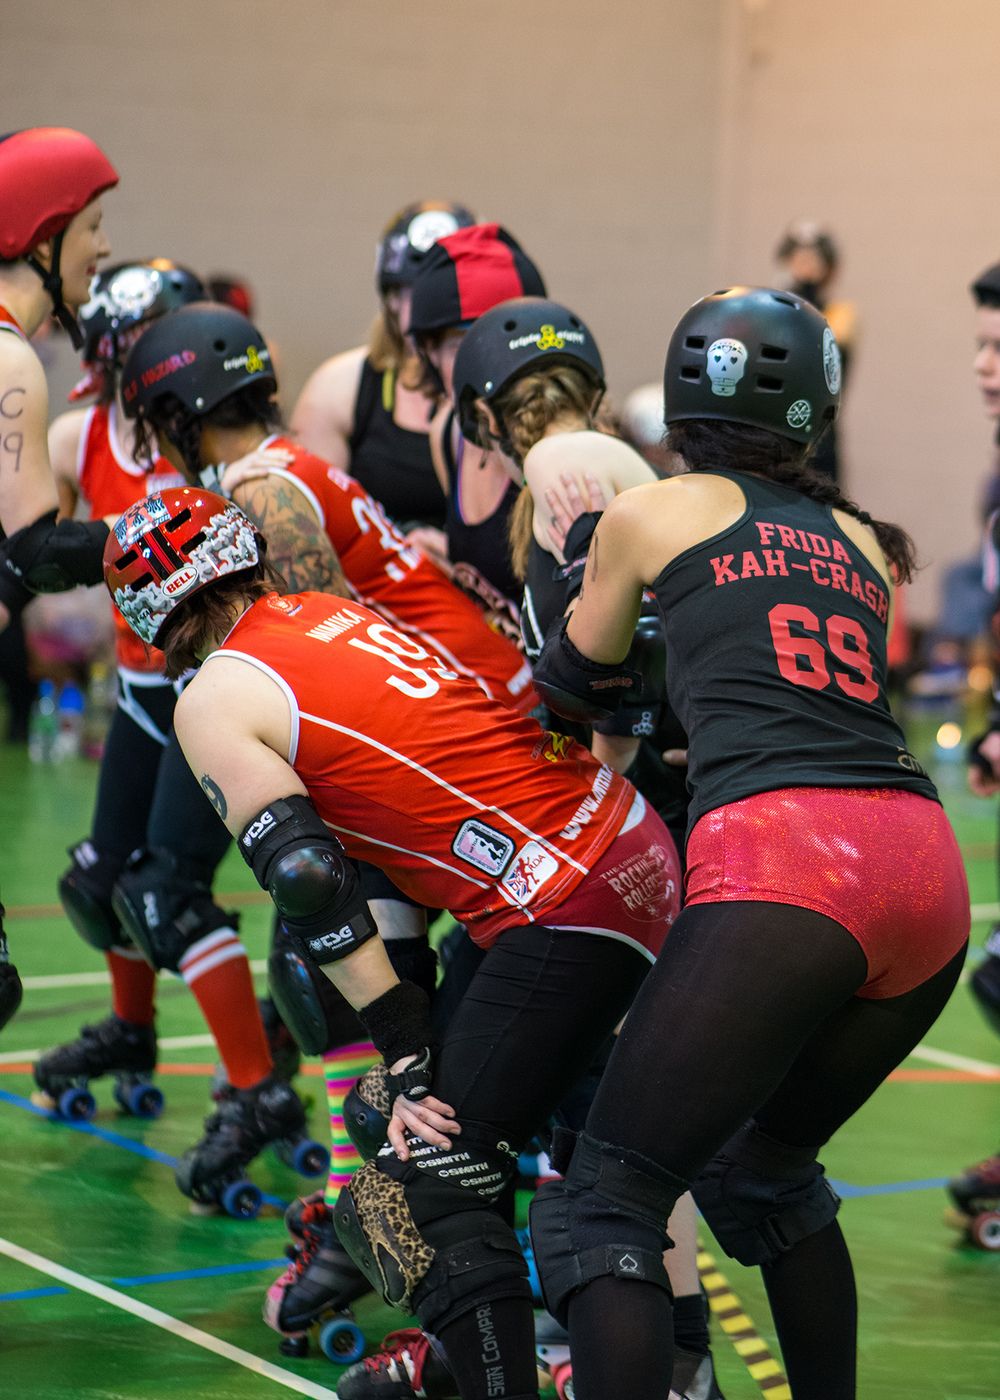 Roller Derby Photography - Plymouth City Roller Girls Vs London Rockin Rollers B Team